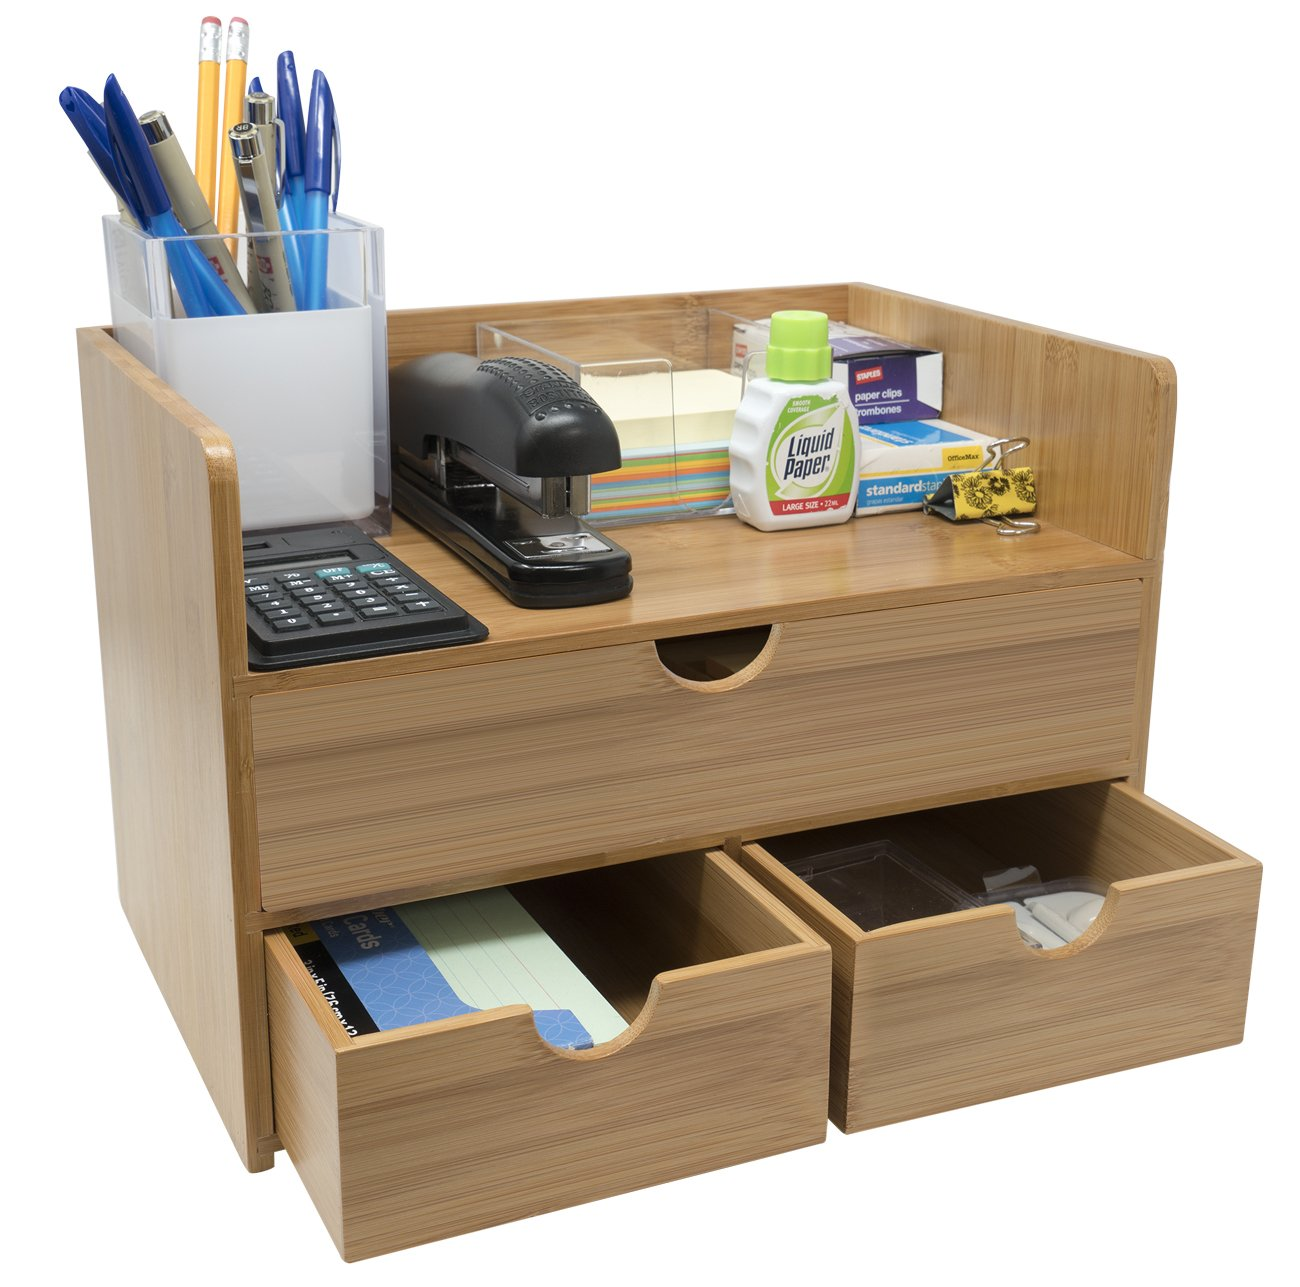 Sorbus 3-Tier Bamboo Shelf Organizer for Desk with Drawers - Mini Desk Storage for Office Supplies, Toiletries, Crafts, etc - Great for Desk, Vanity, Tabletop in Home or Office by Sorbus